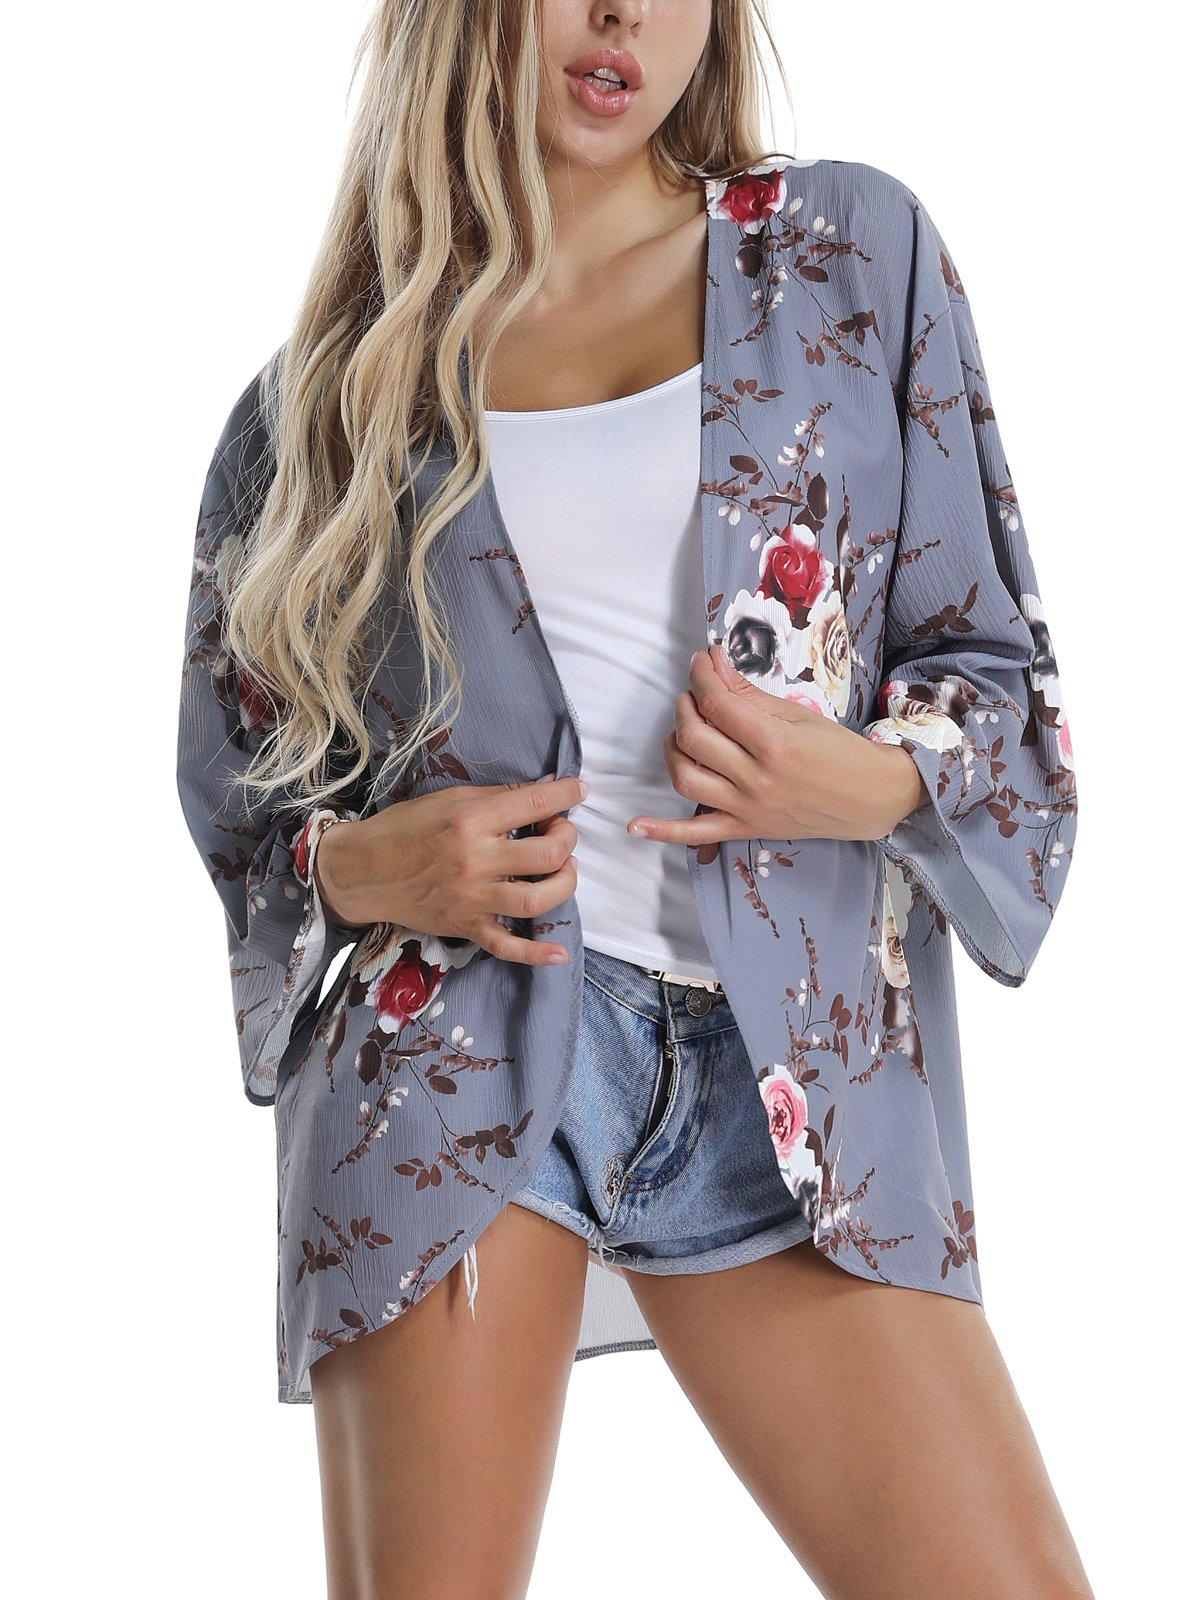 VYNCS Women's Grey Casual Floral Chiffon Cardigan Kimono 3/4 Sleeve Loose Sheer Beach Wear Cover up Summer (Grey, XX-Large)